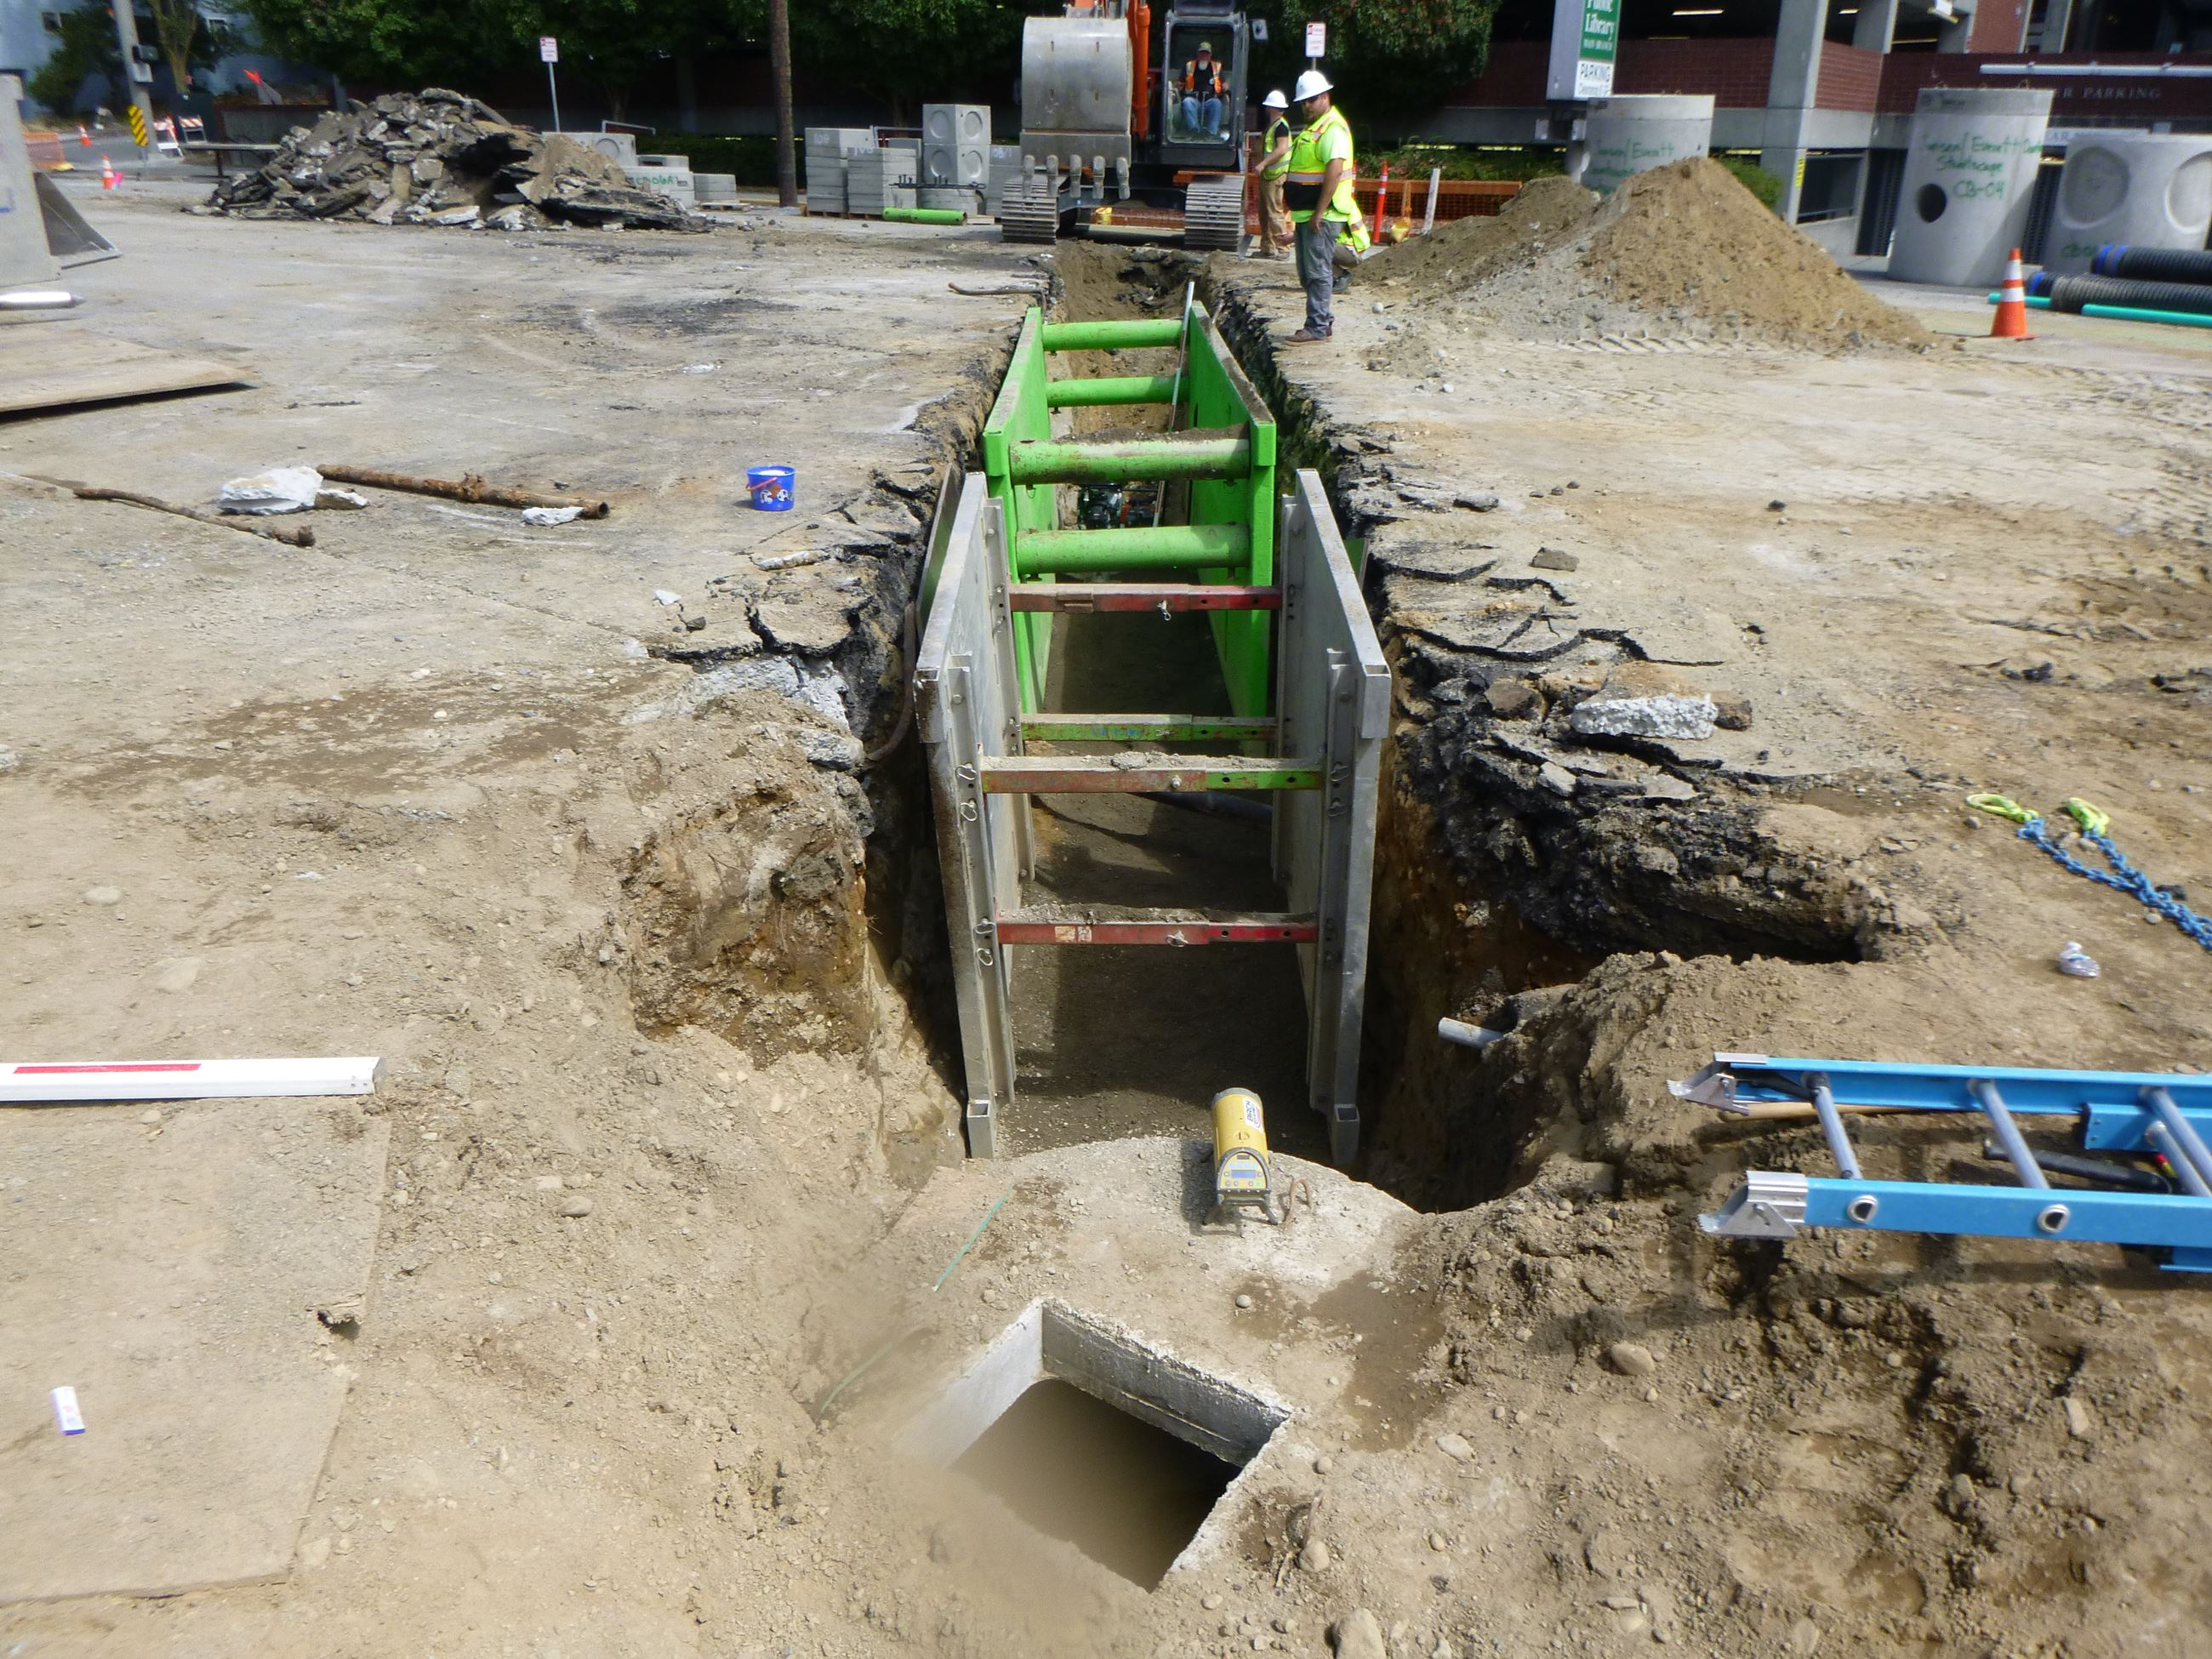 Rucker Drainage work